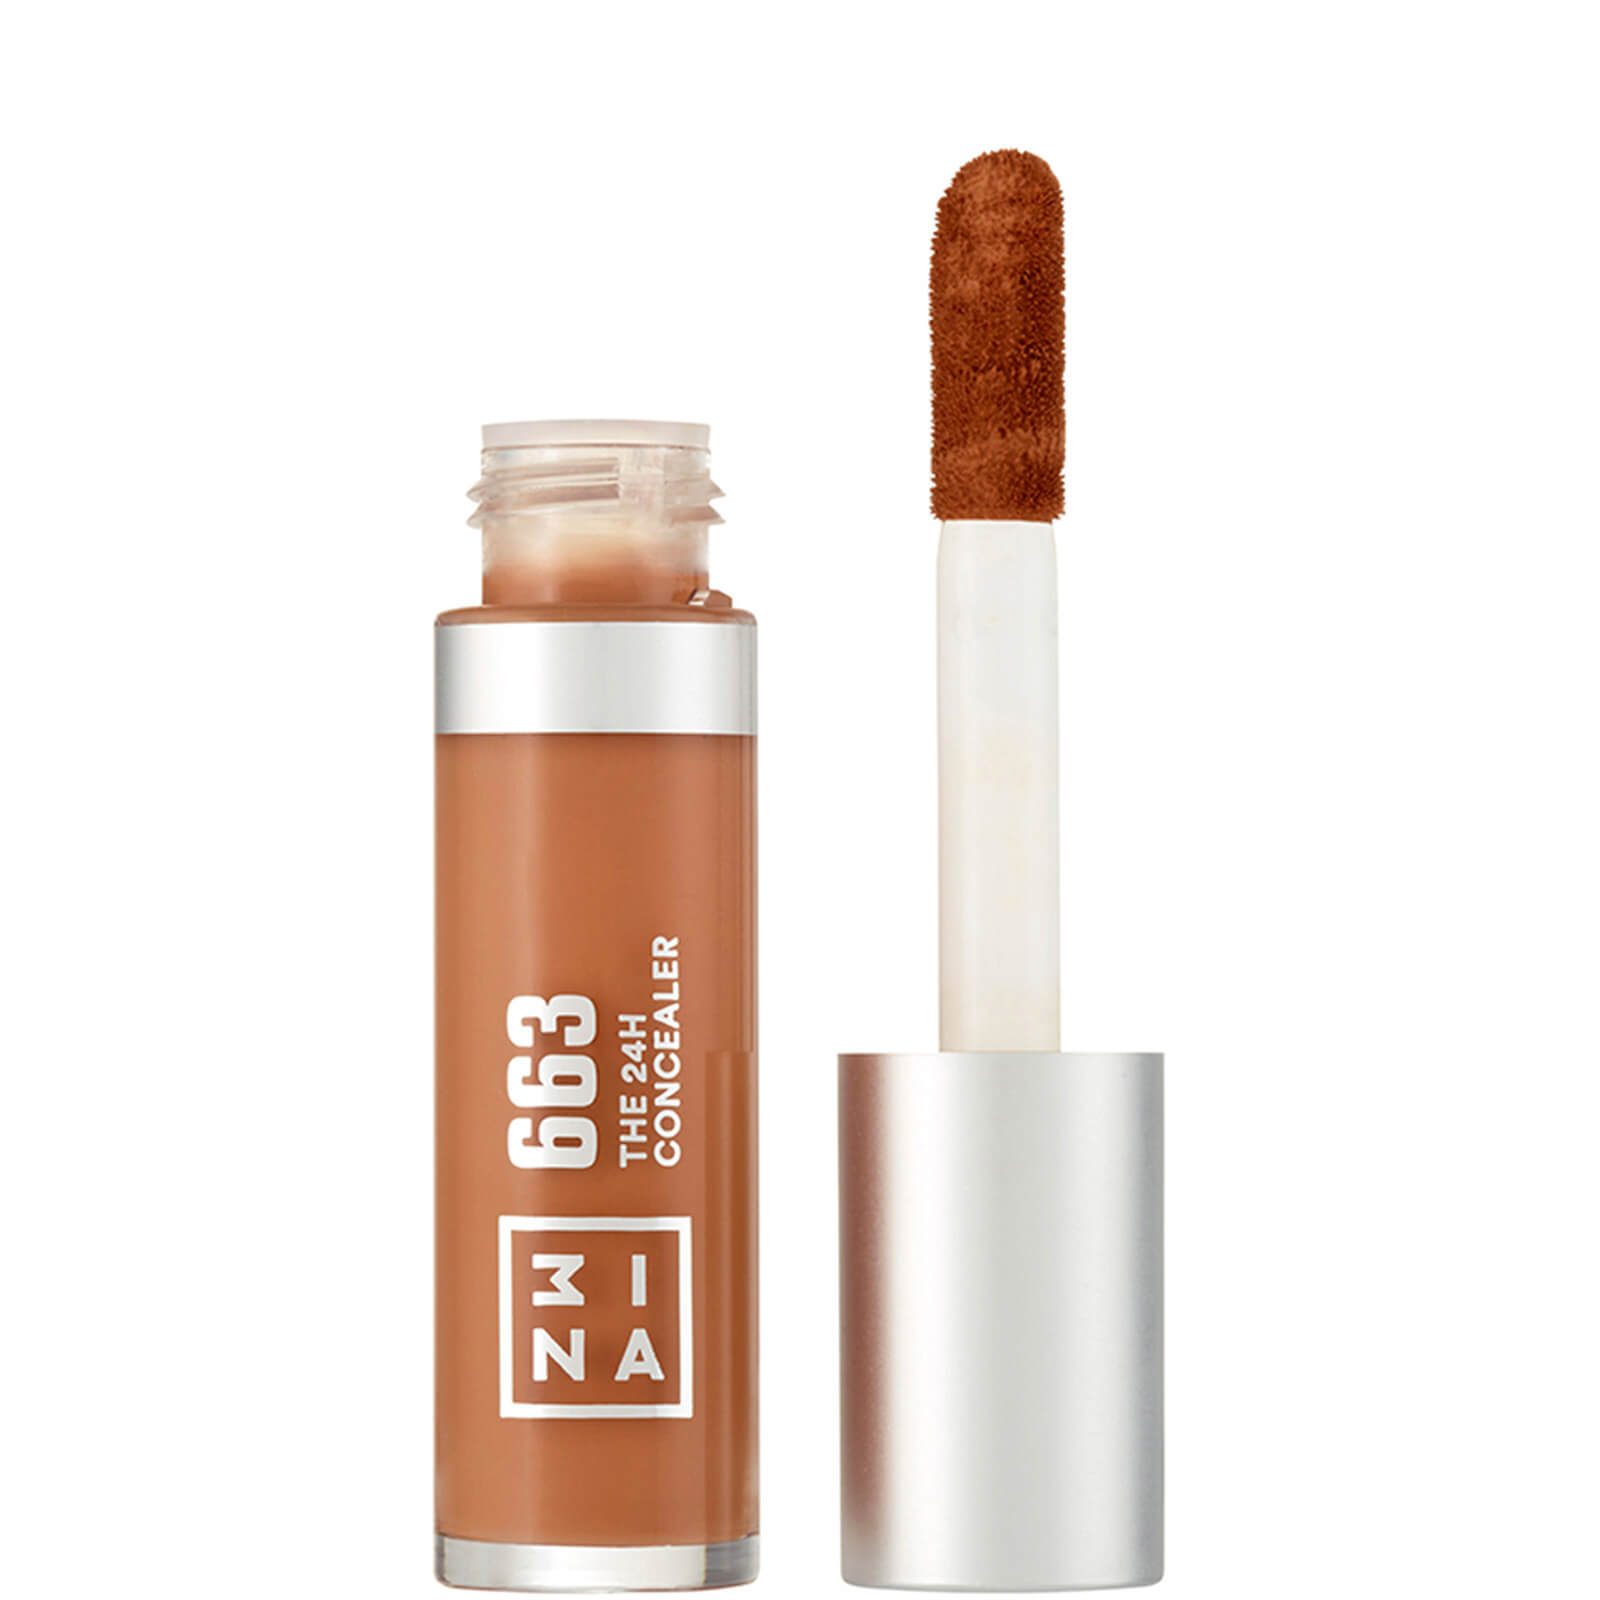 3INA Makeup The 24 Hour Concealer 28ml (Various Shades) - 663 Brown